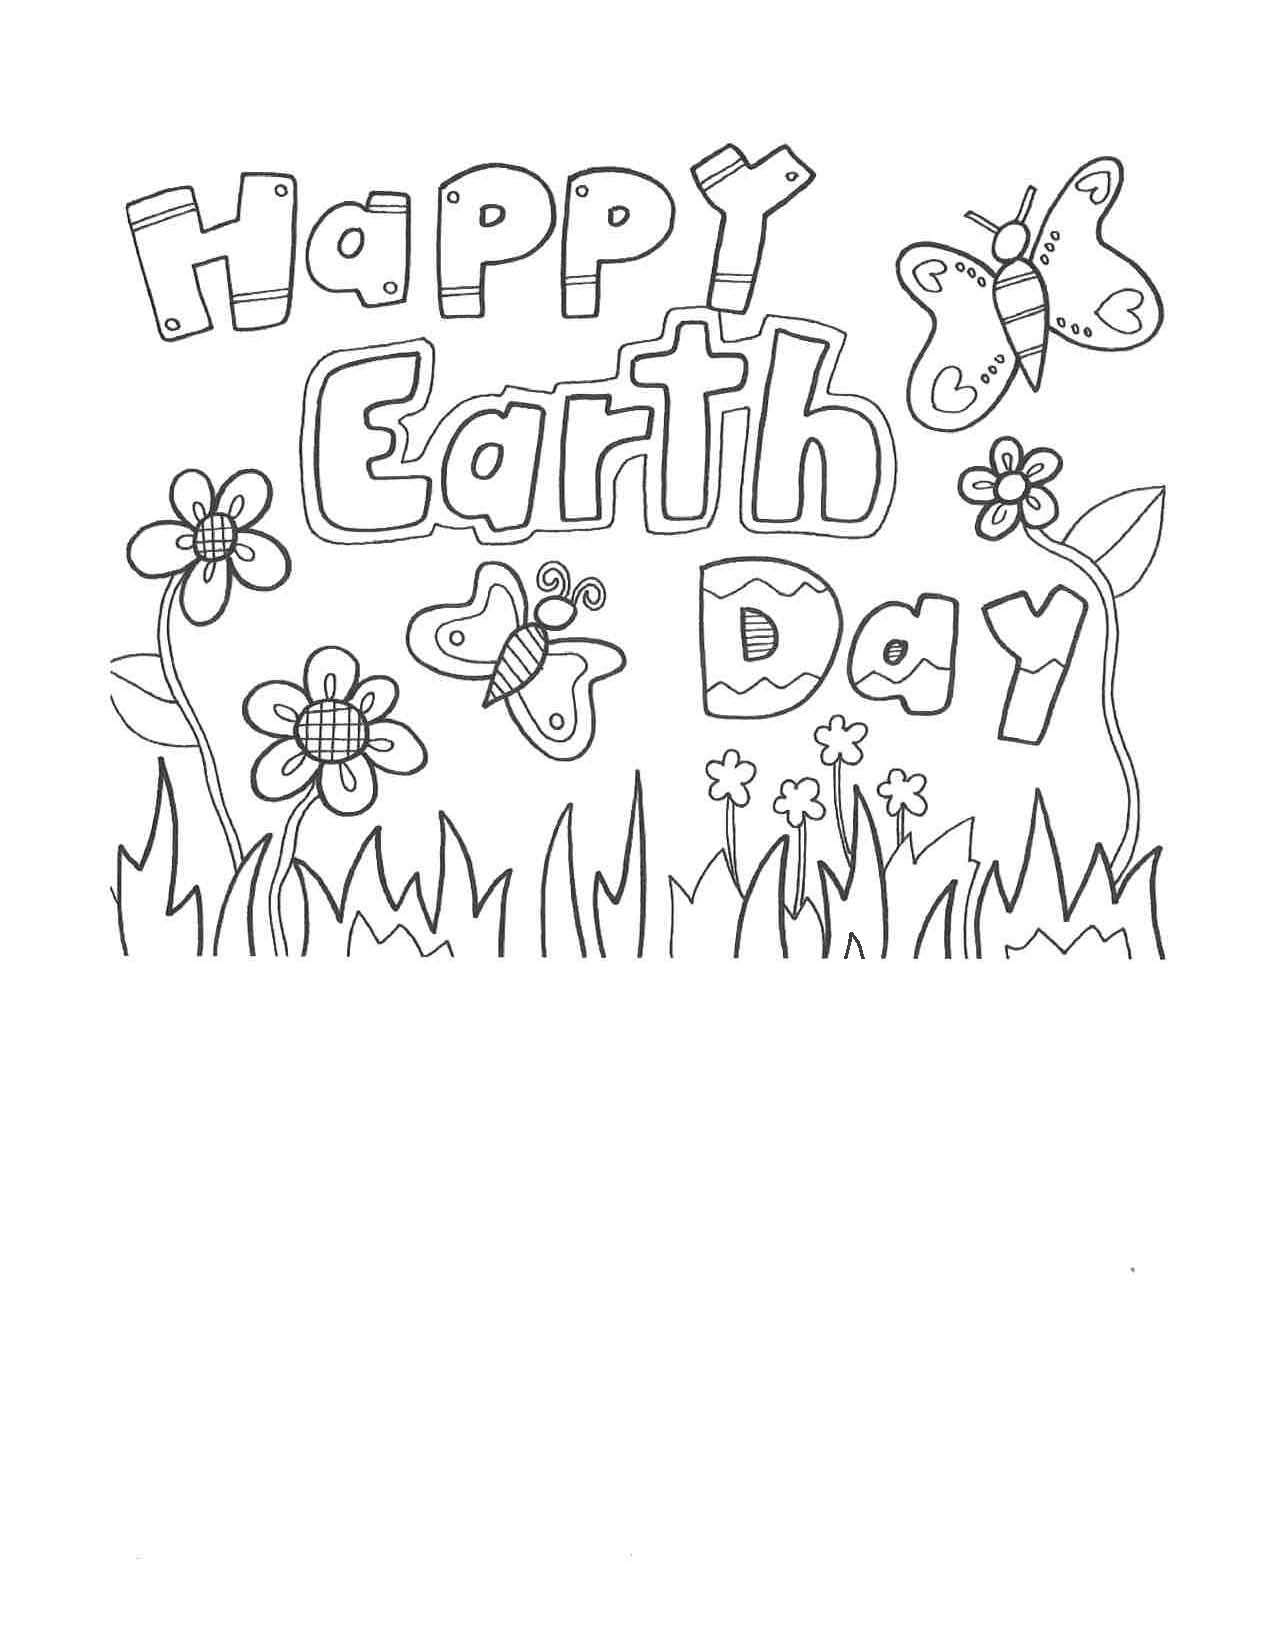 earth day coloring contest town of blades sussex county delaware